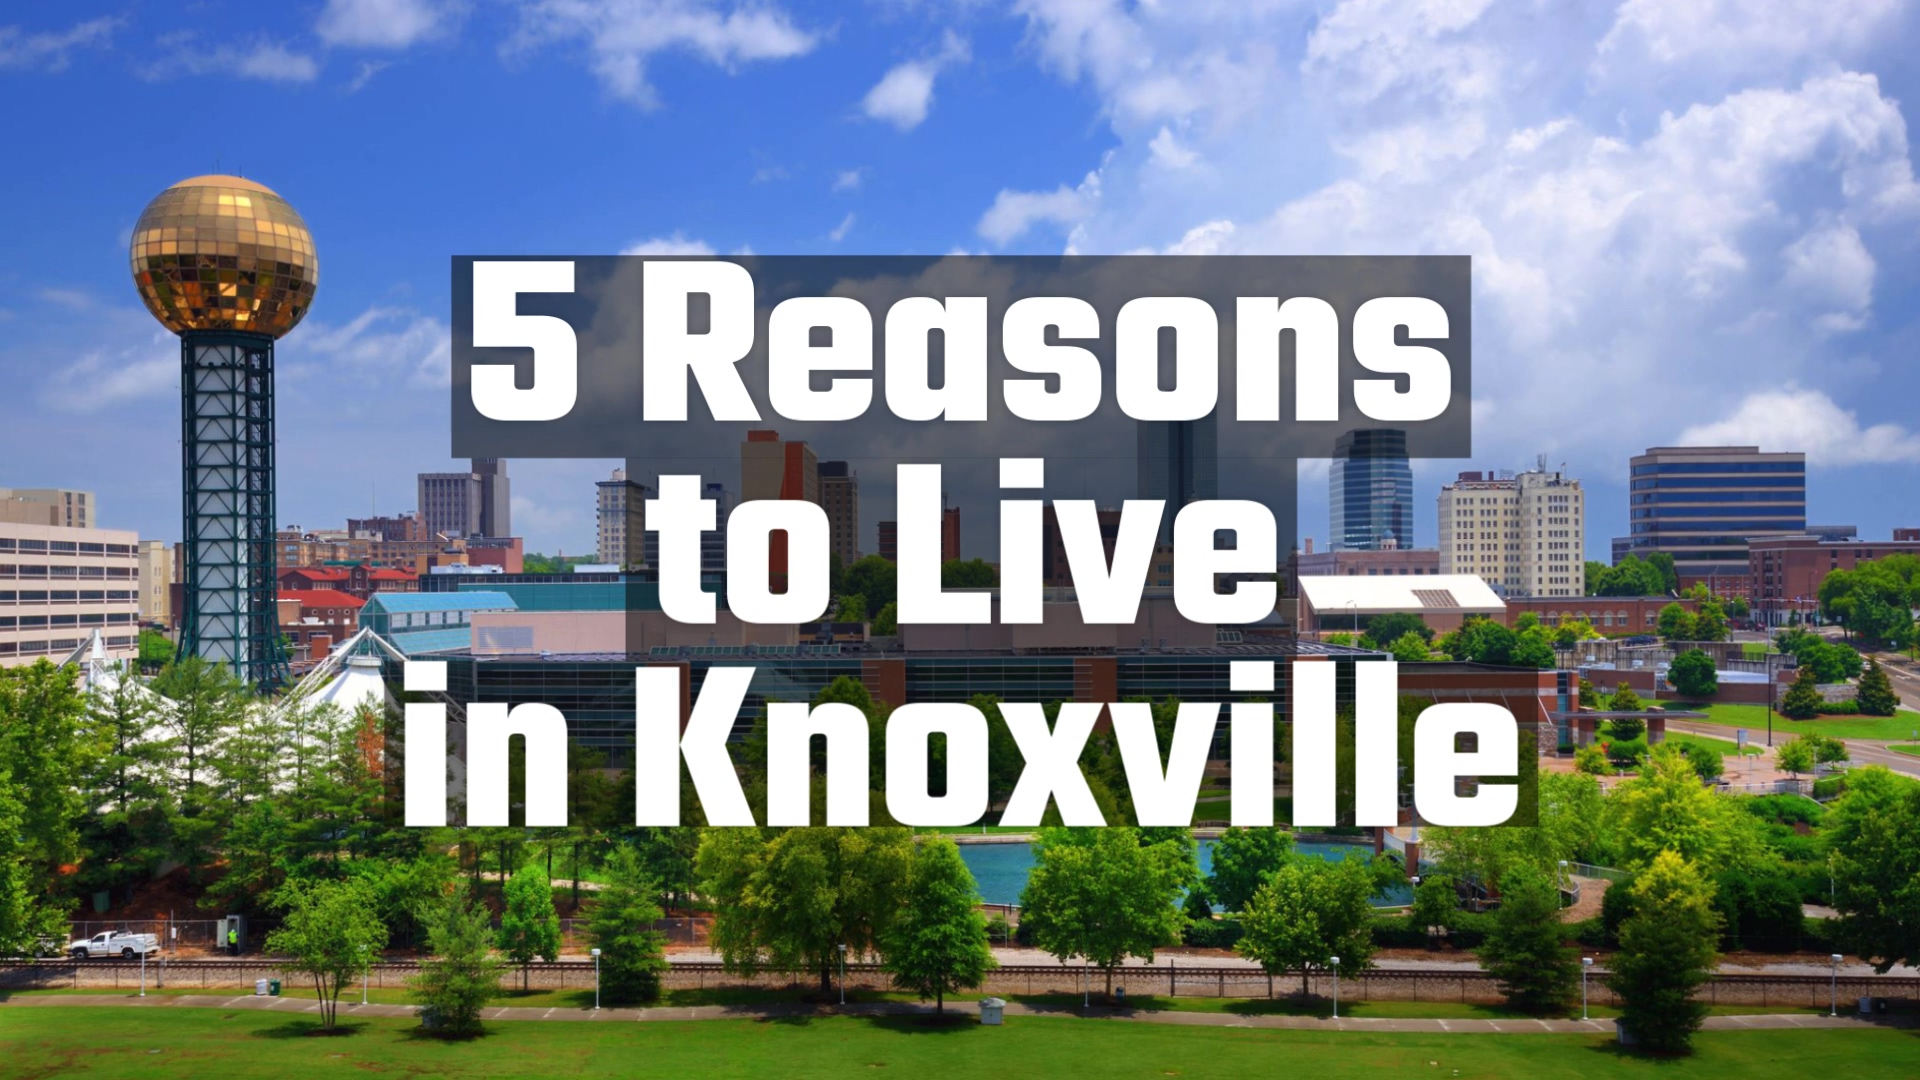 5_Reasons_to_Live_in_Knoxville_1080p -Final